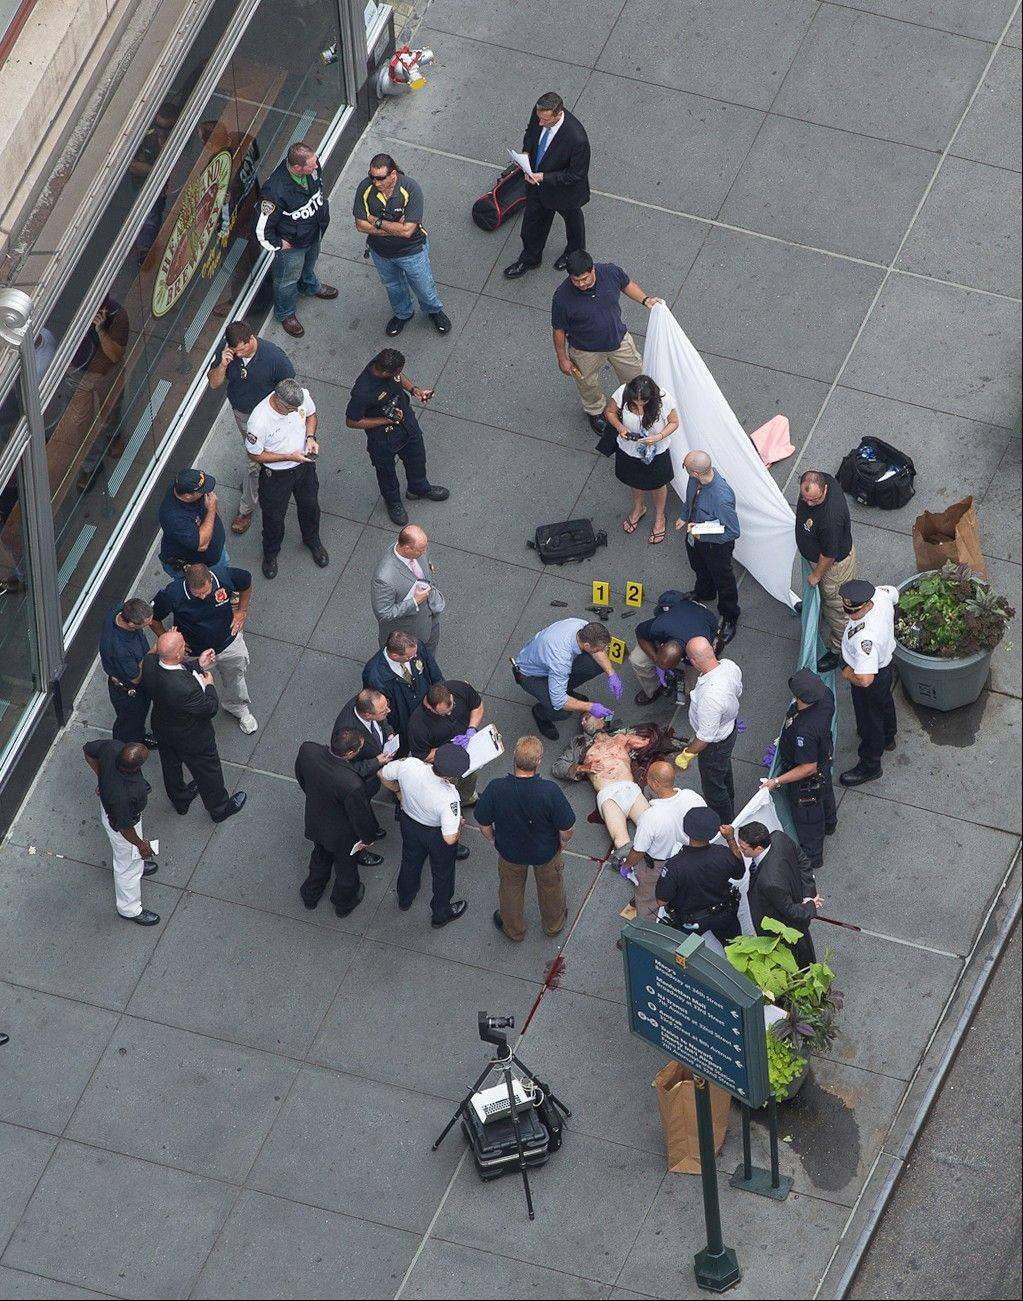 Officials examine the body of gunman Jeffrey Johnson, who was killed Friday by police gunfire after he fatally shot Steven Ercolino, an executive at his former company, outside the Empire State Building.